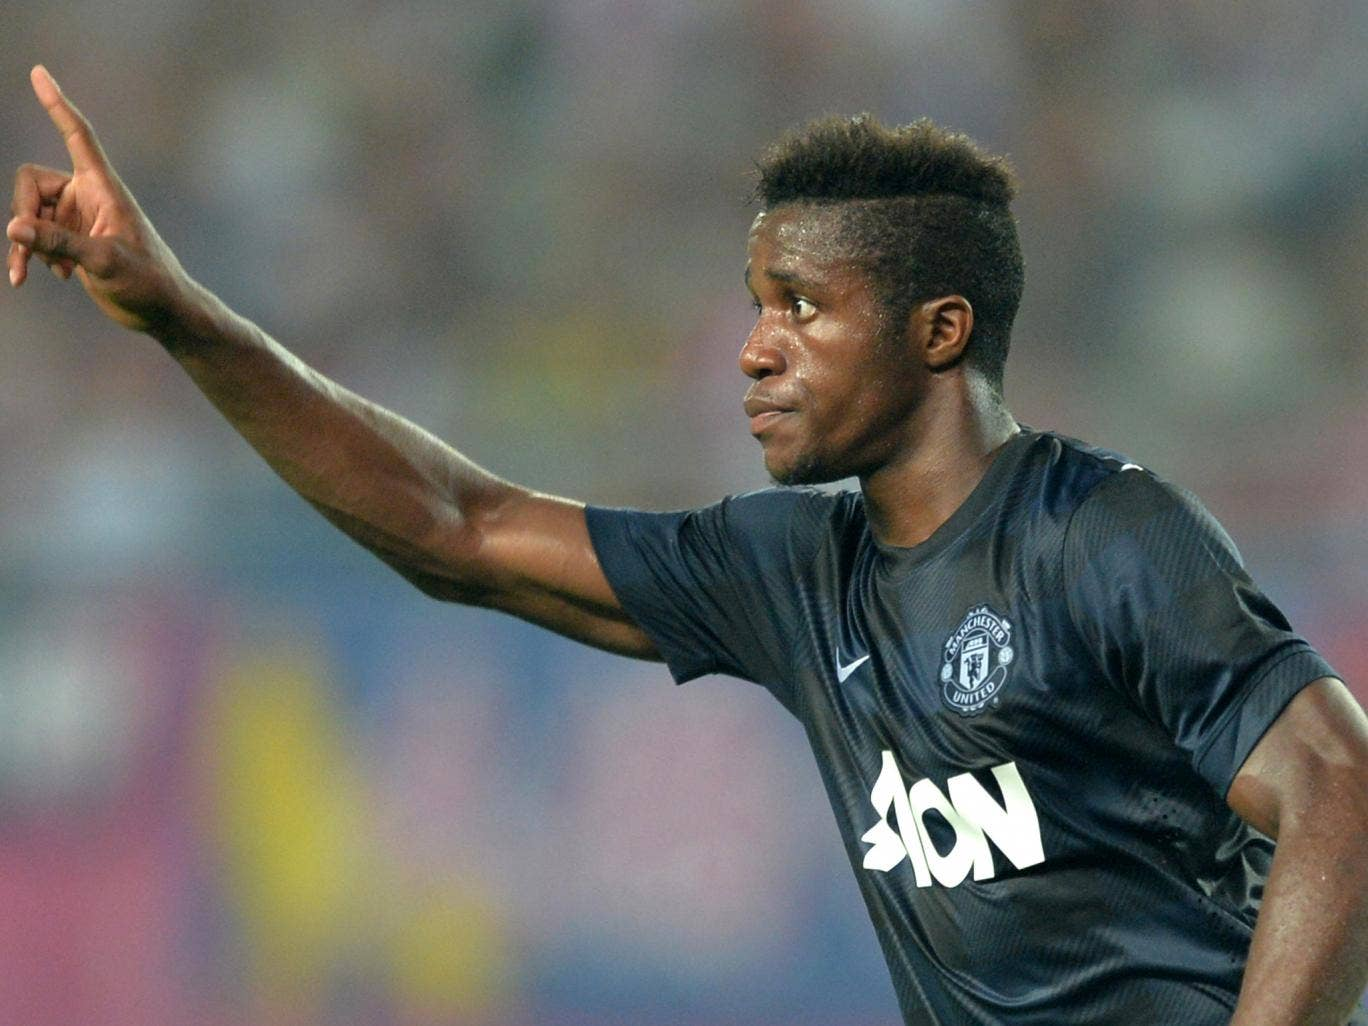 Wilfried Zaha bagged his first goal for Manchester United in a pre-season friendly